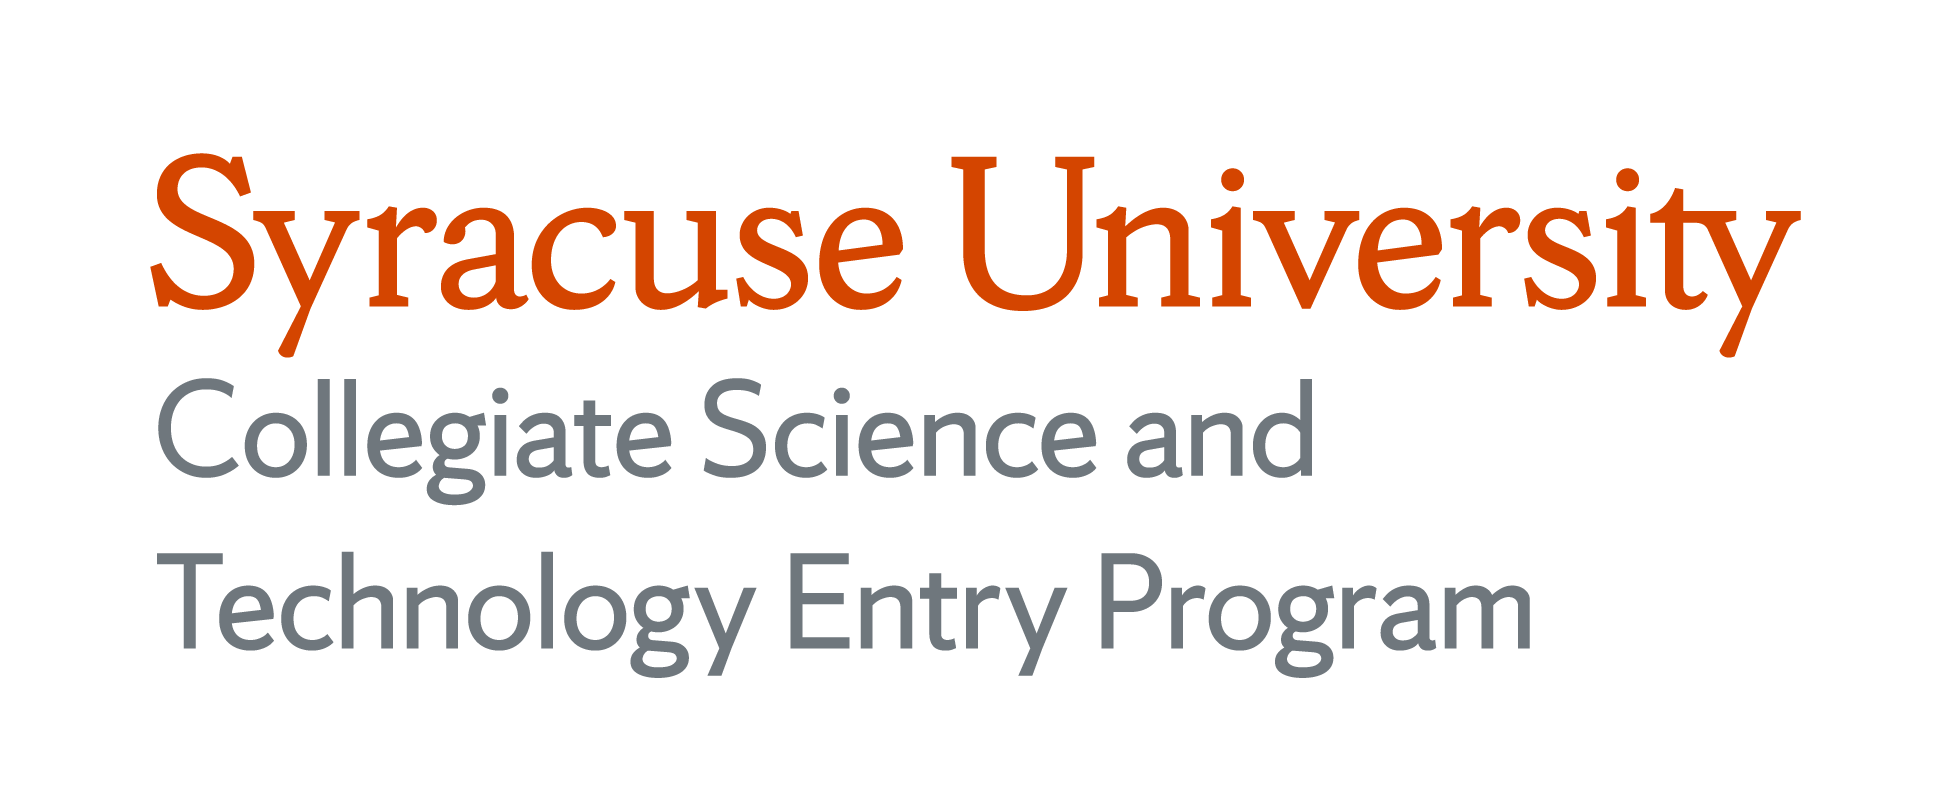 Syracuse University Collegiate Science and Technology Entry Program